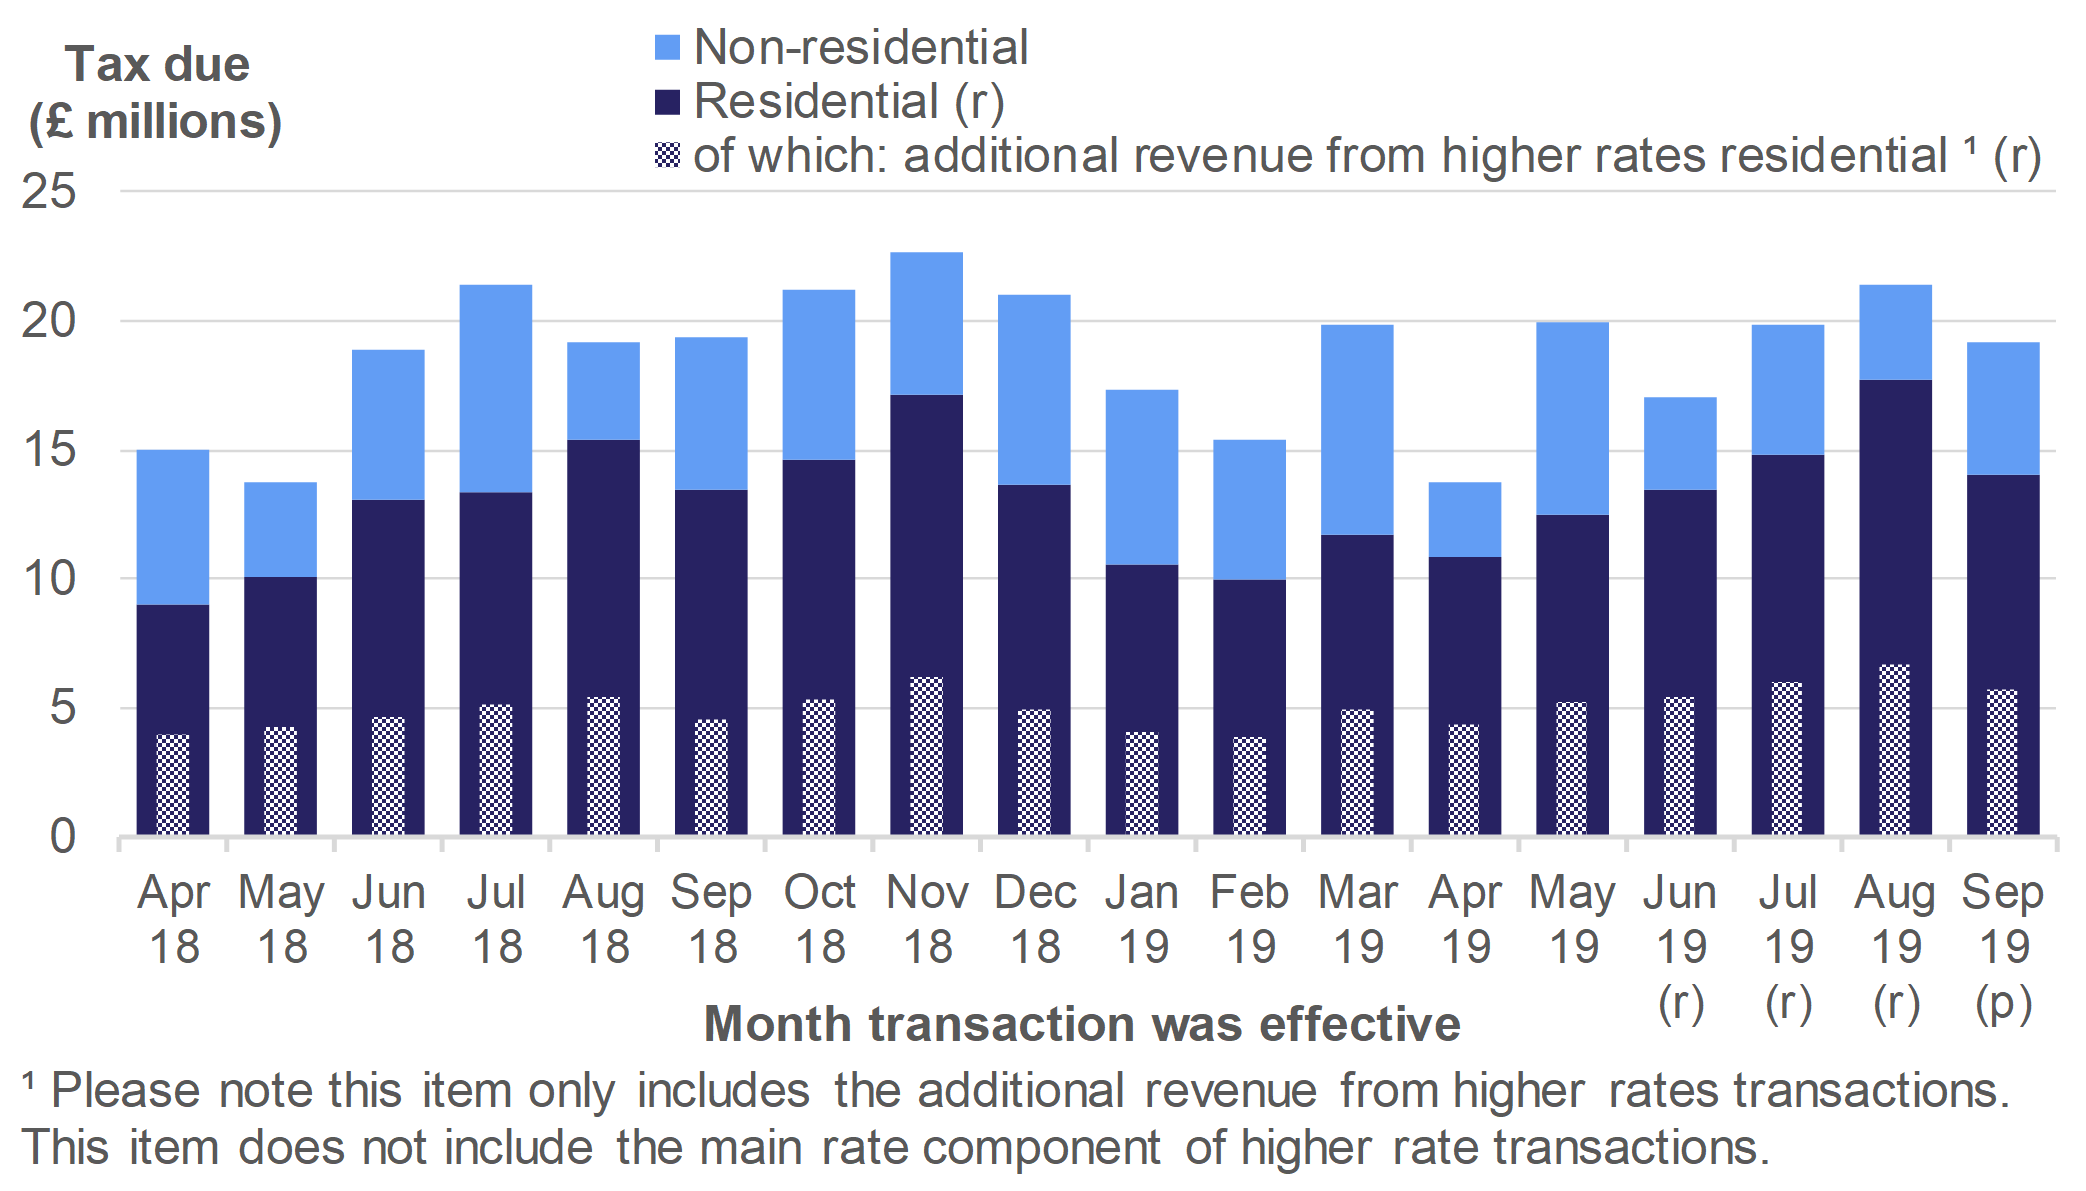 Figure 2.5 shows the monthly amount of tax due on reported notifiable transactions from April 2018 to September 2019, for residential and non-residential transactions.